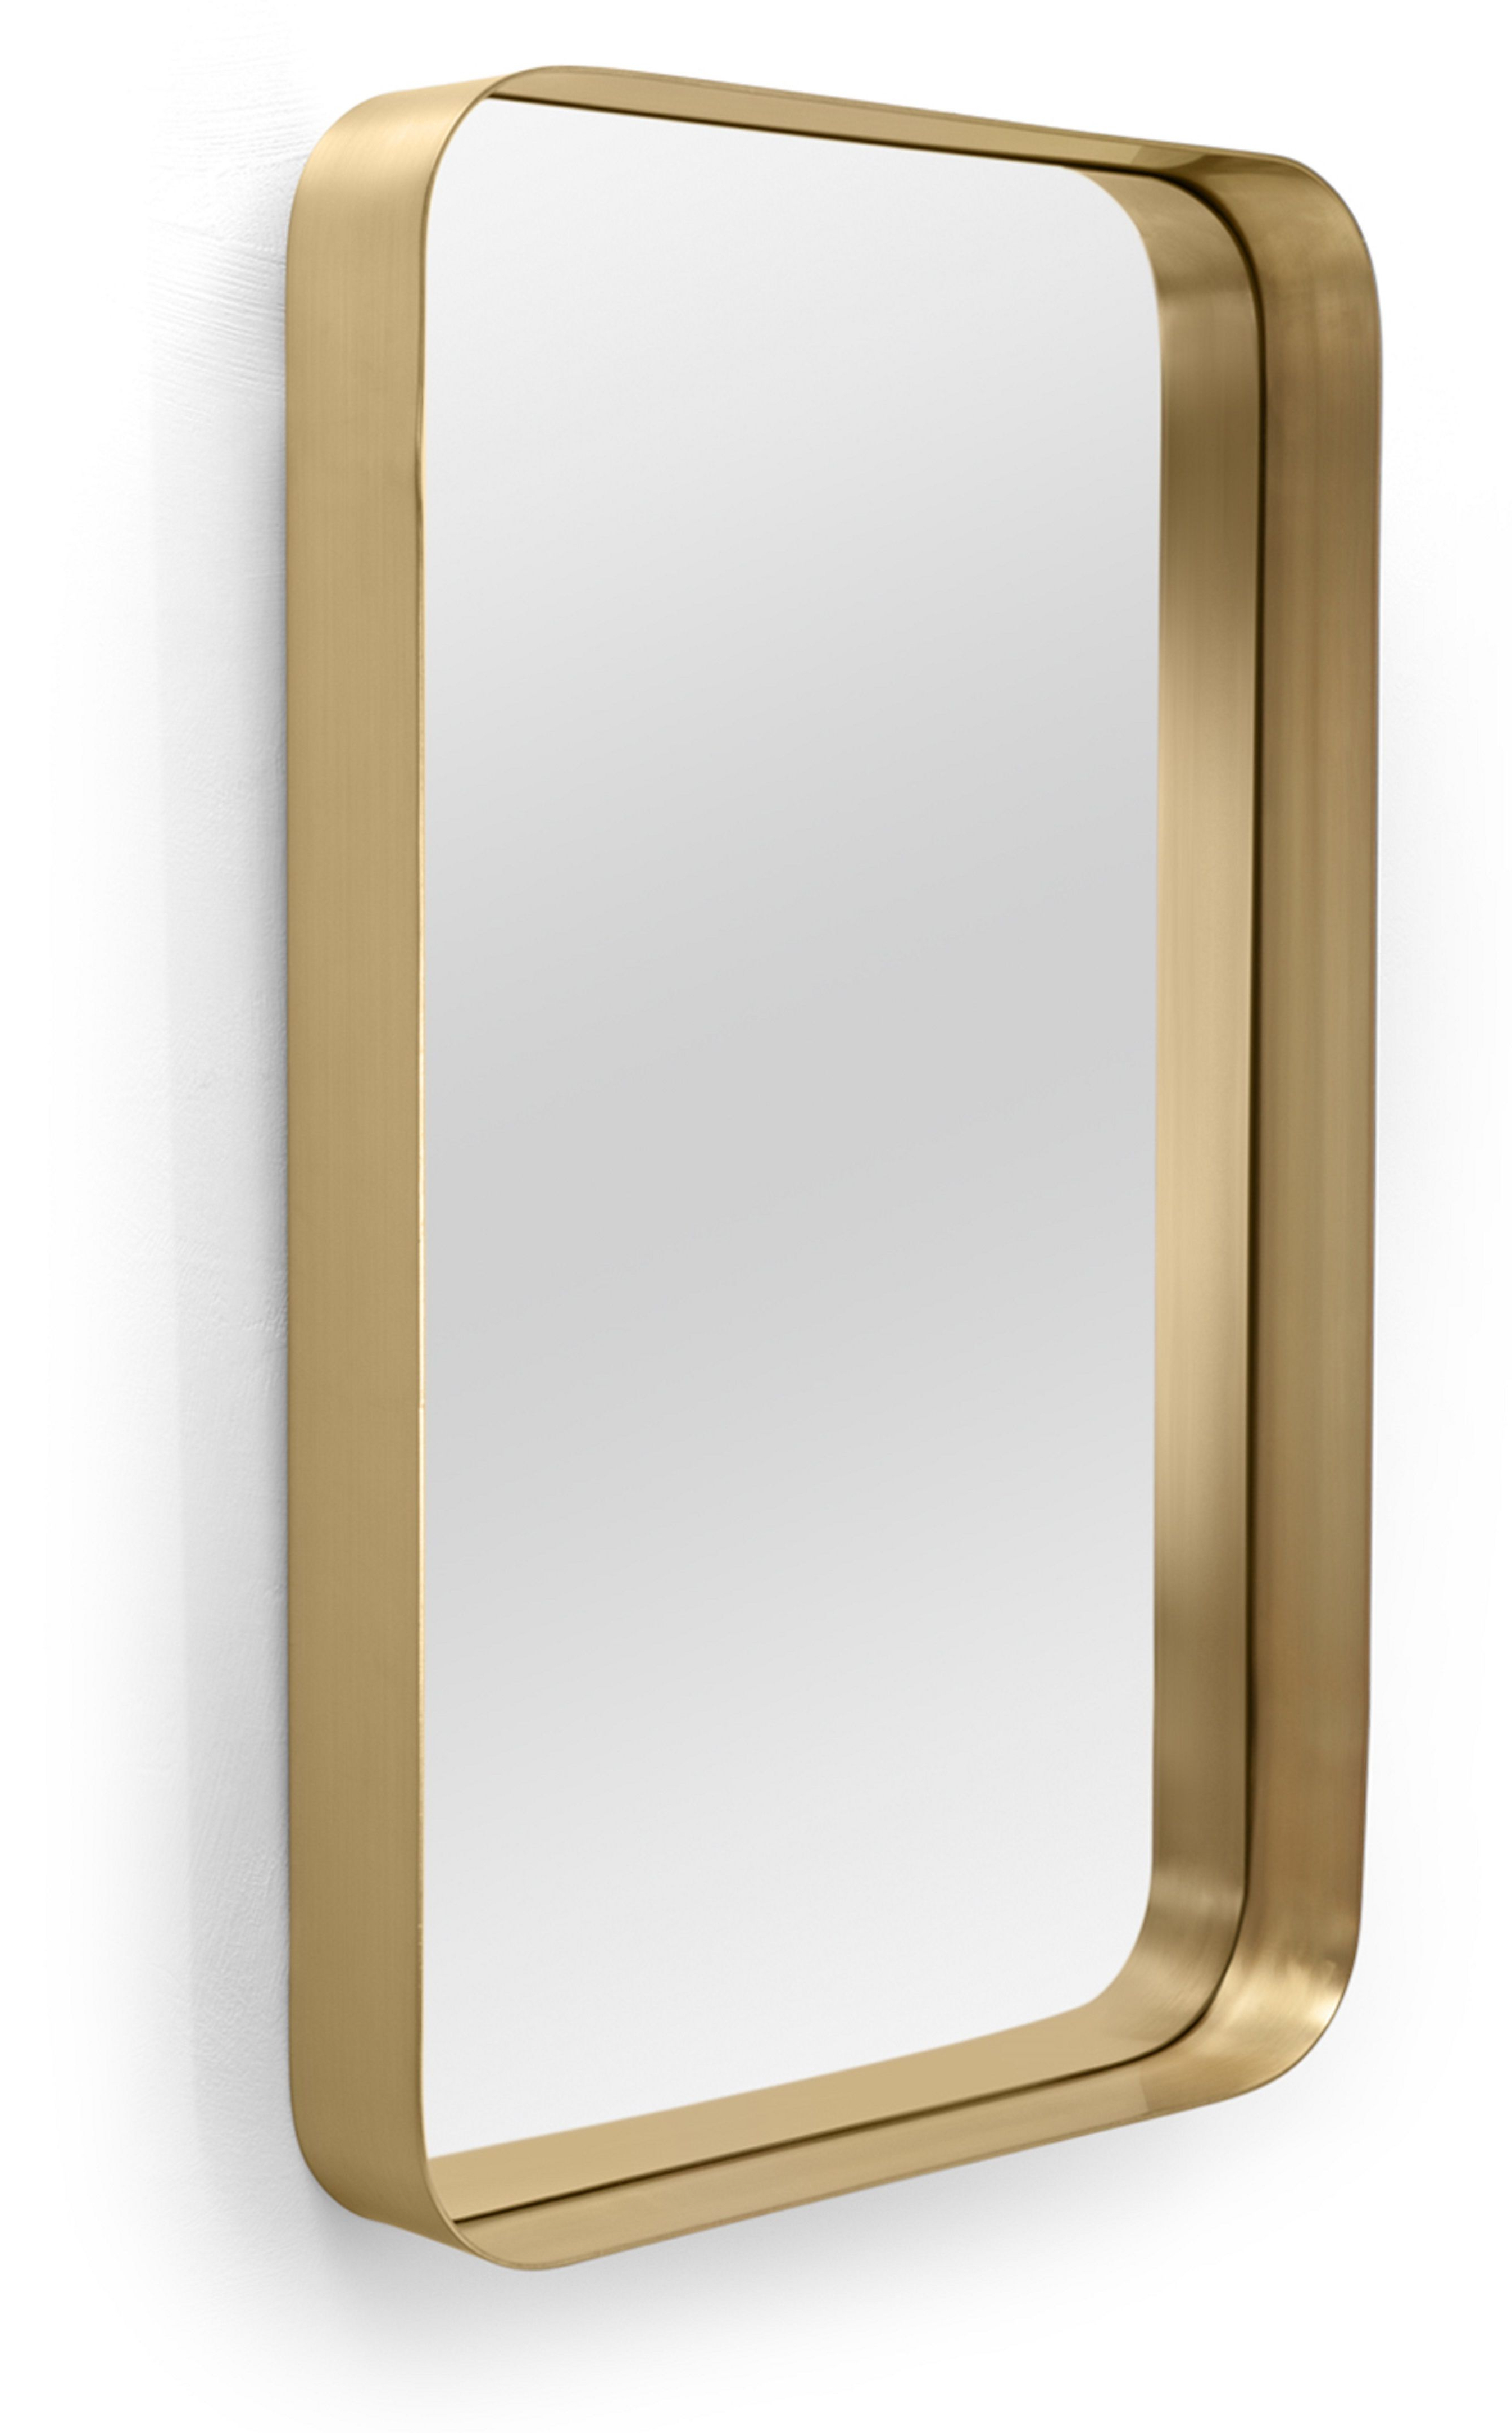 Lugo Rectangle Accent Mirrors Inside Widely Used Alana Rectangular Mirror 50 X 80 Cm, Brushed Brass (View 13 of 20)